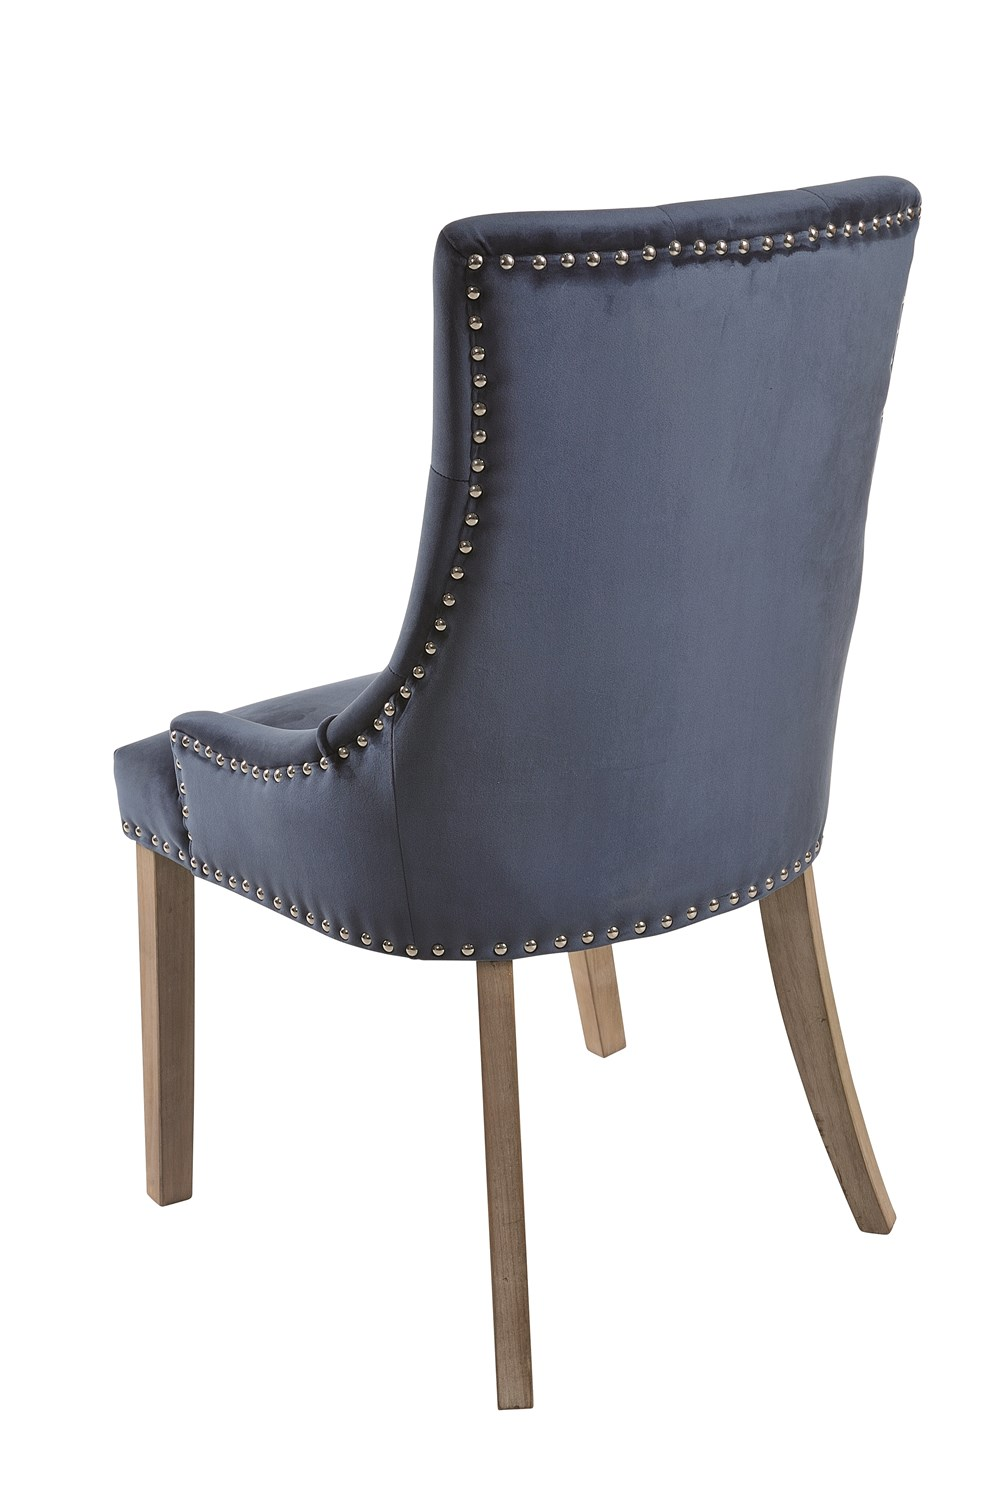 BROUGHTON VICKY Prussian Blue Upholstered Chair